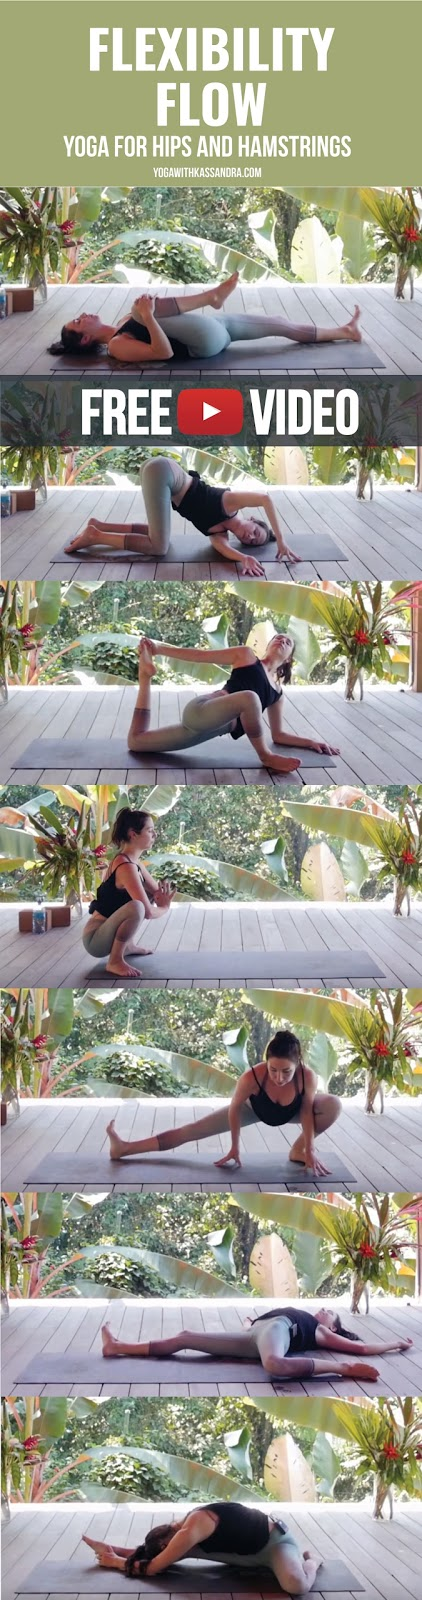 I get asked time and time again for a follow up to my one hour flexibility flow on my YouTube channel. And last week I put out a new one hour flexibility flow, this time focusing on the hips and hamstrings.